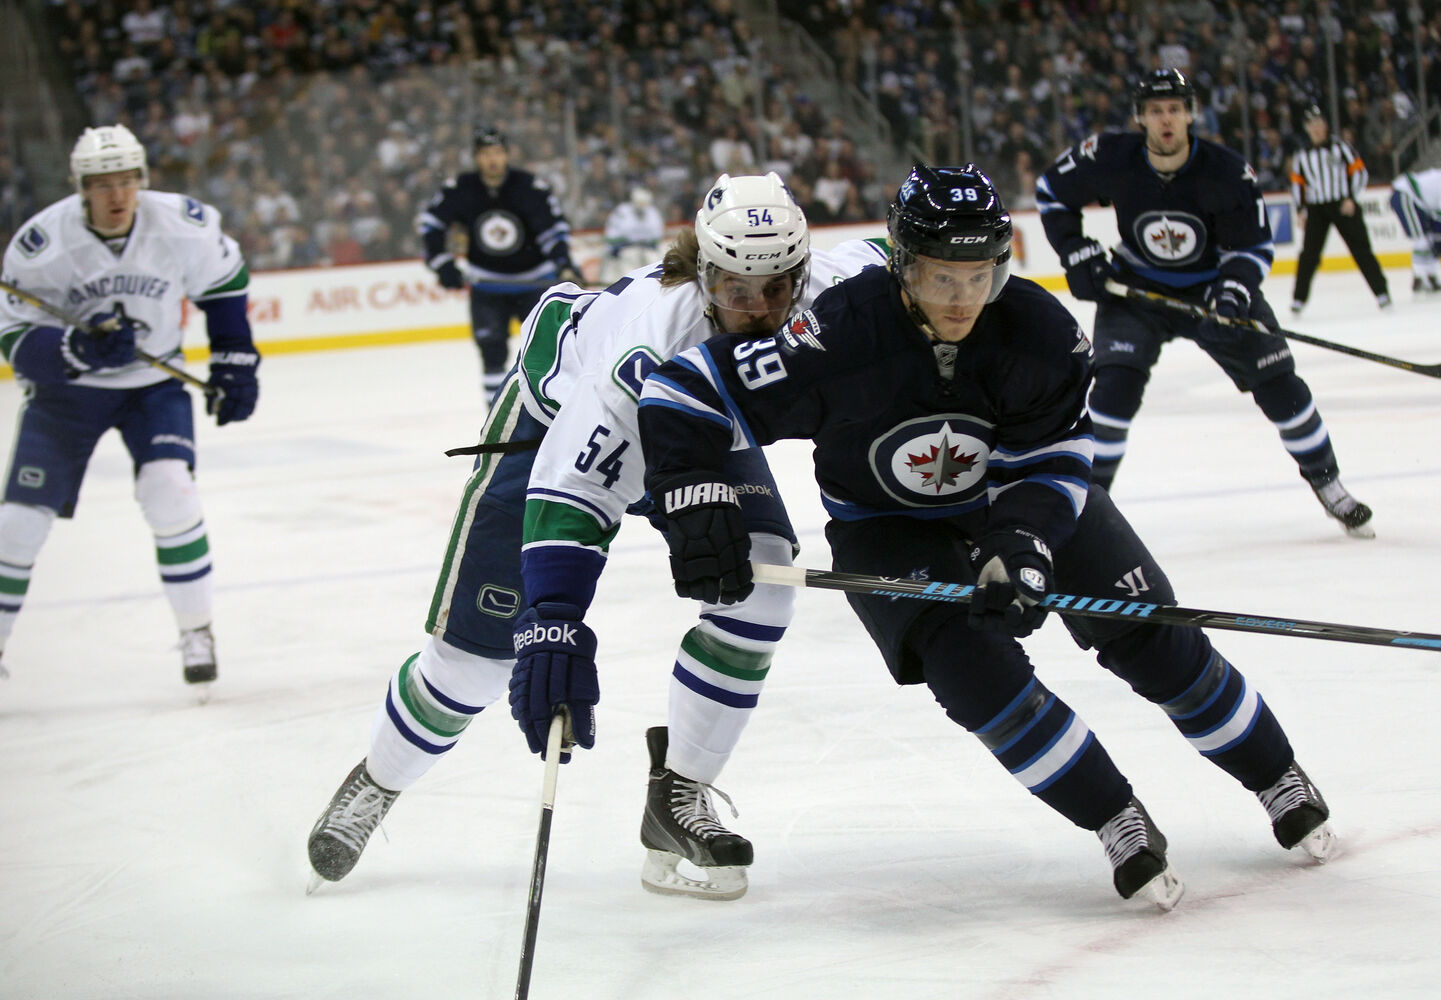 Winnipeg Jets' Tobias Endstrom and Vancouver Canucks' Kellan Lain run for the puck during the first period of Friday's game at Winnipeg's MTS Centre. (Joe Bryska / Winnipeg Free Press)